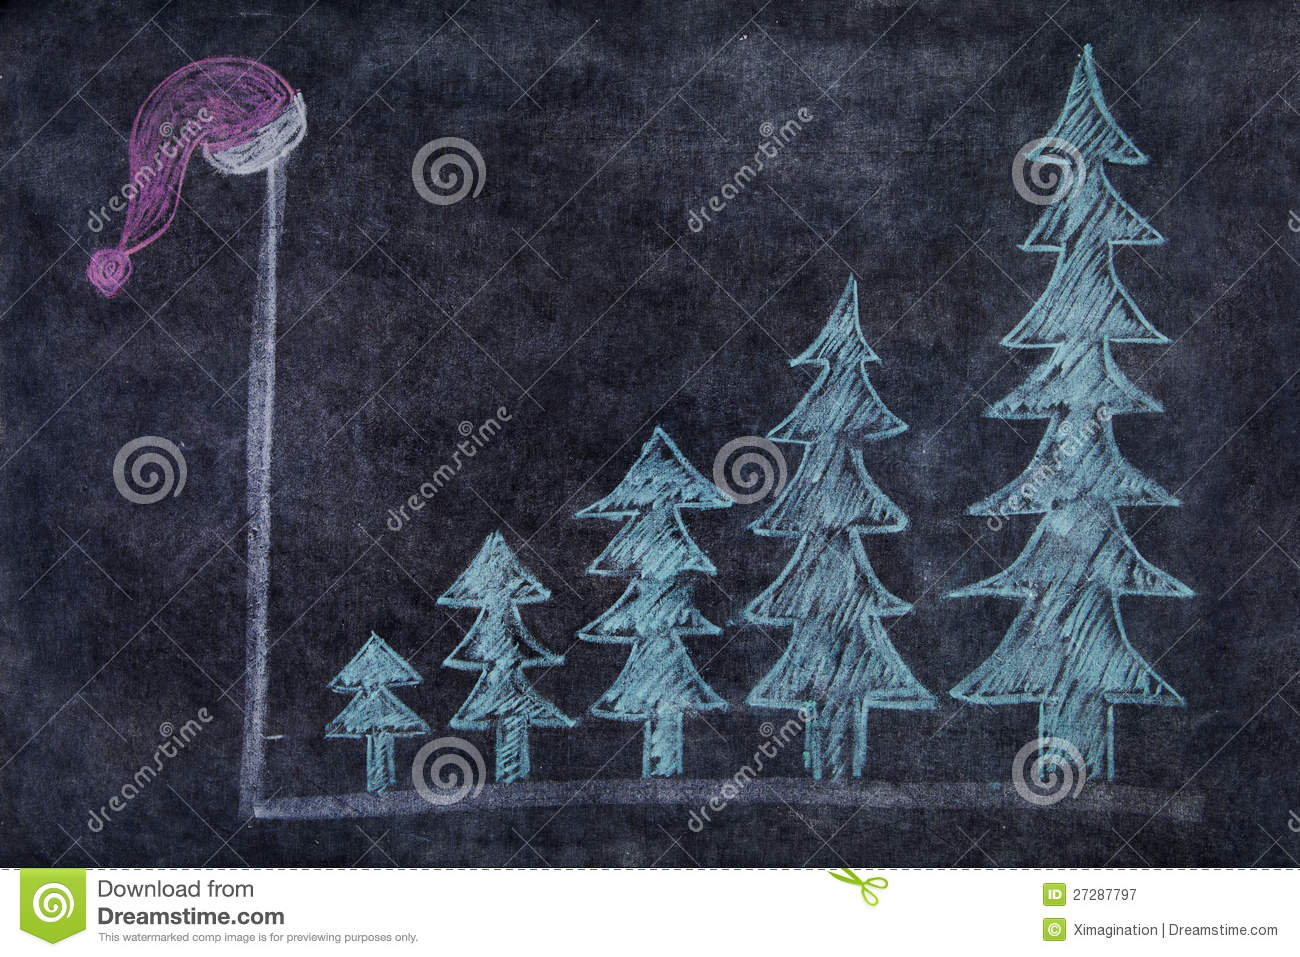 Blackboard with Christmas trees and santa hat